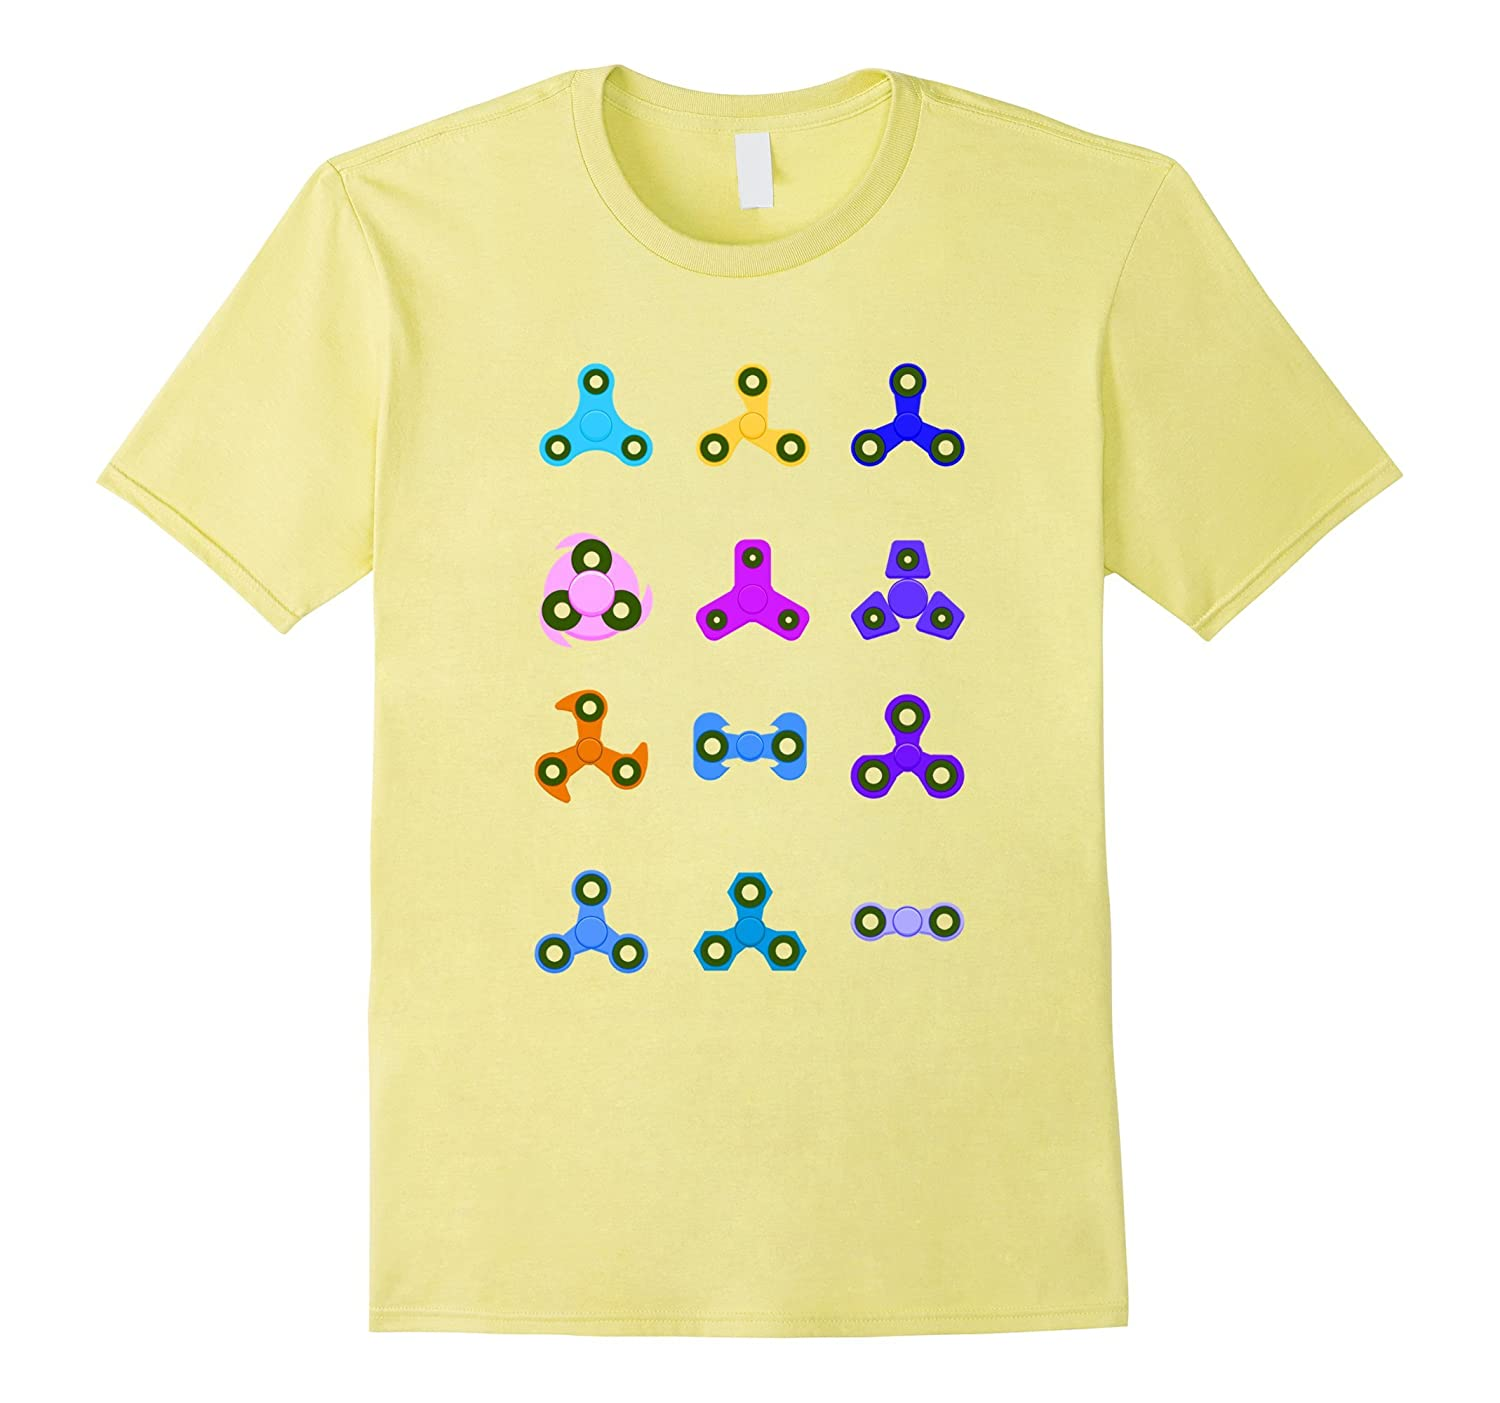 Fidget Hand Spinner Shirt For Adult and Youth Sizes-T-Shirt